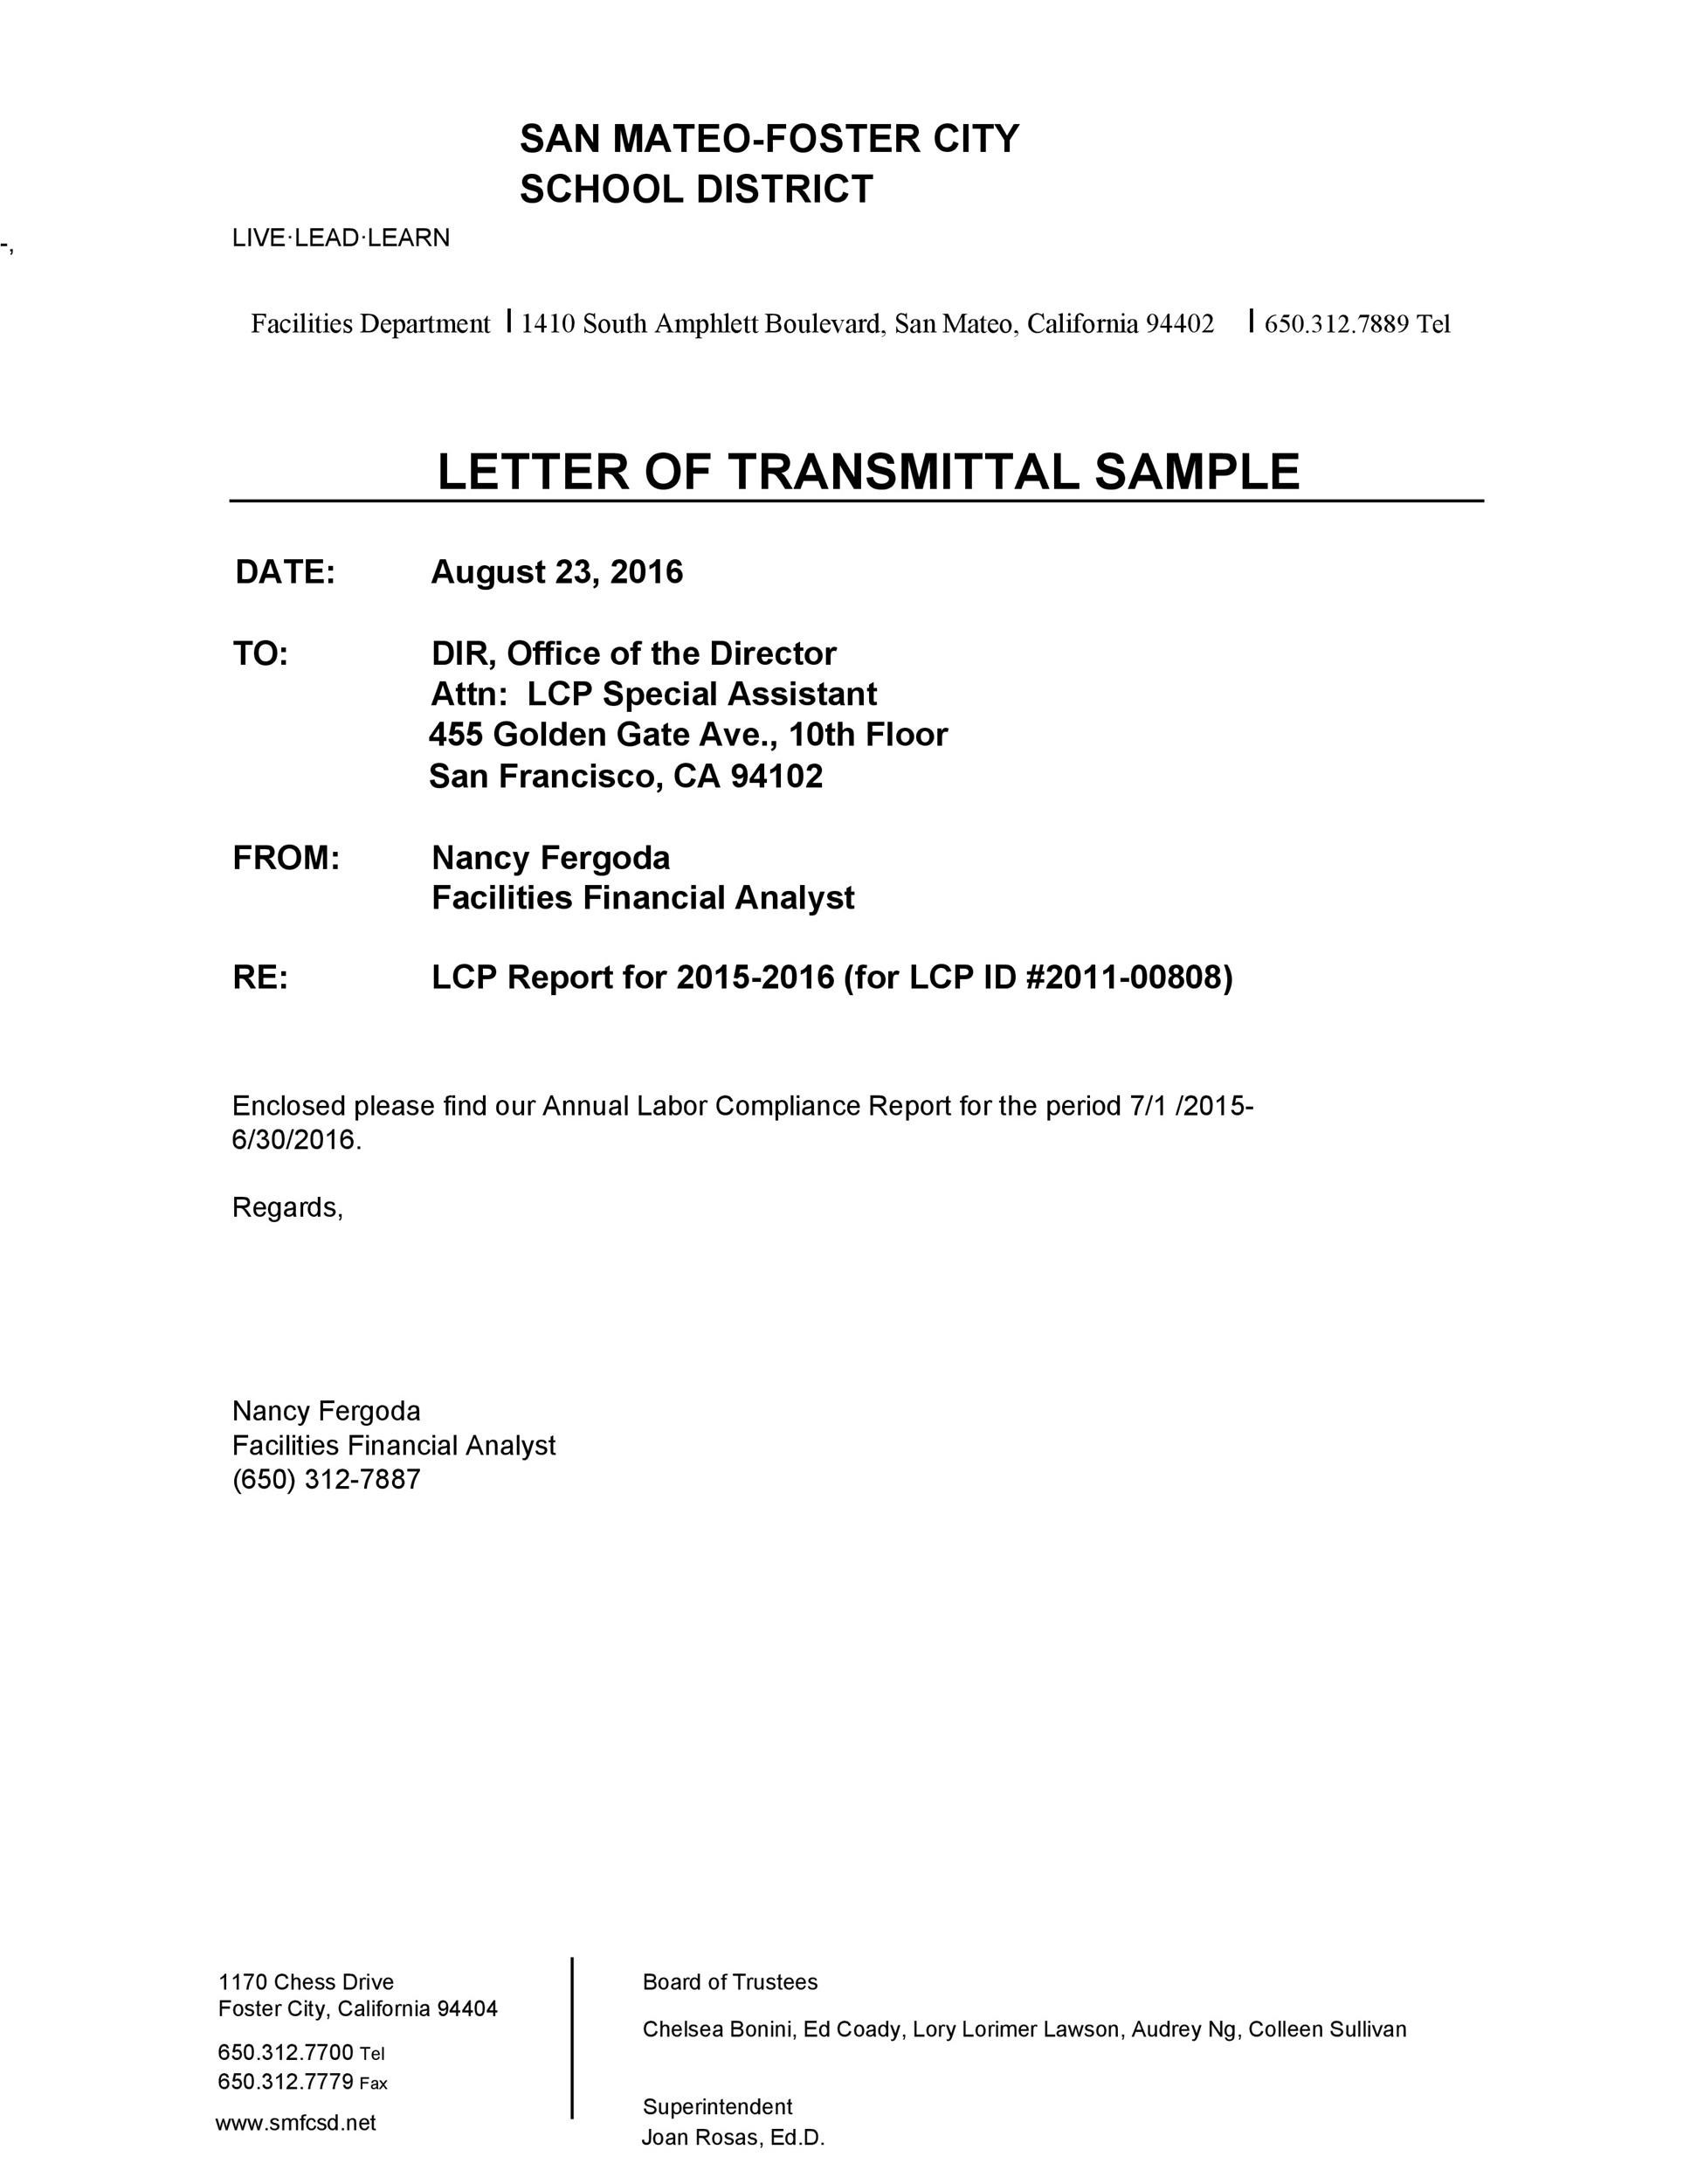 Letter of Transmittal - 40+ Great Examples & Templates ᐅ Template Lab